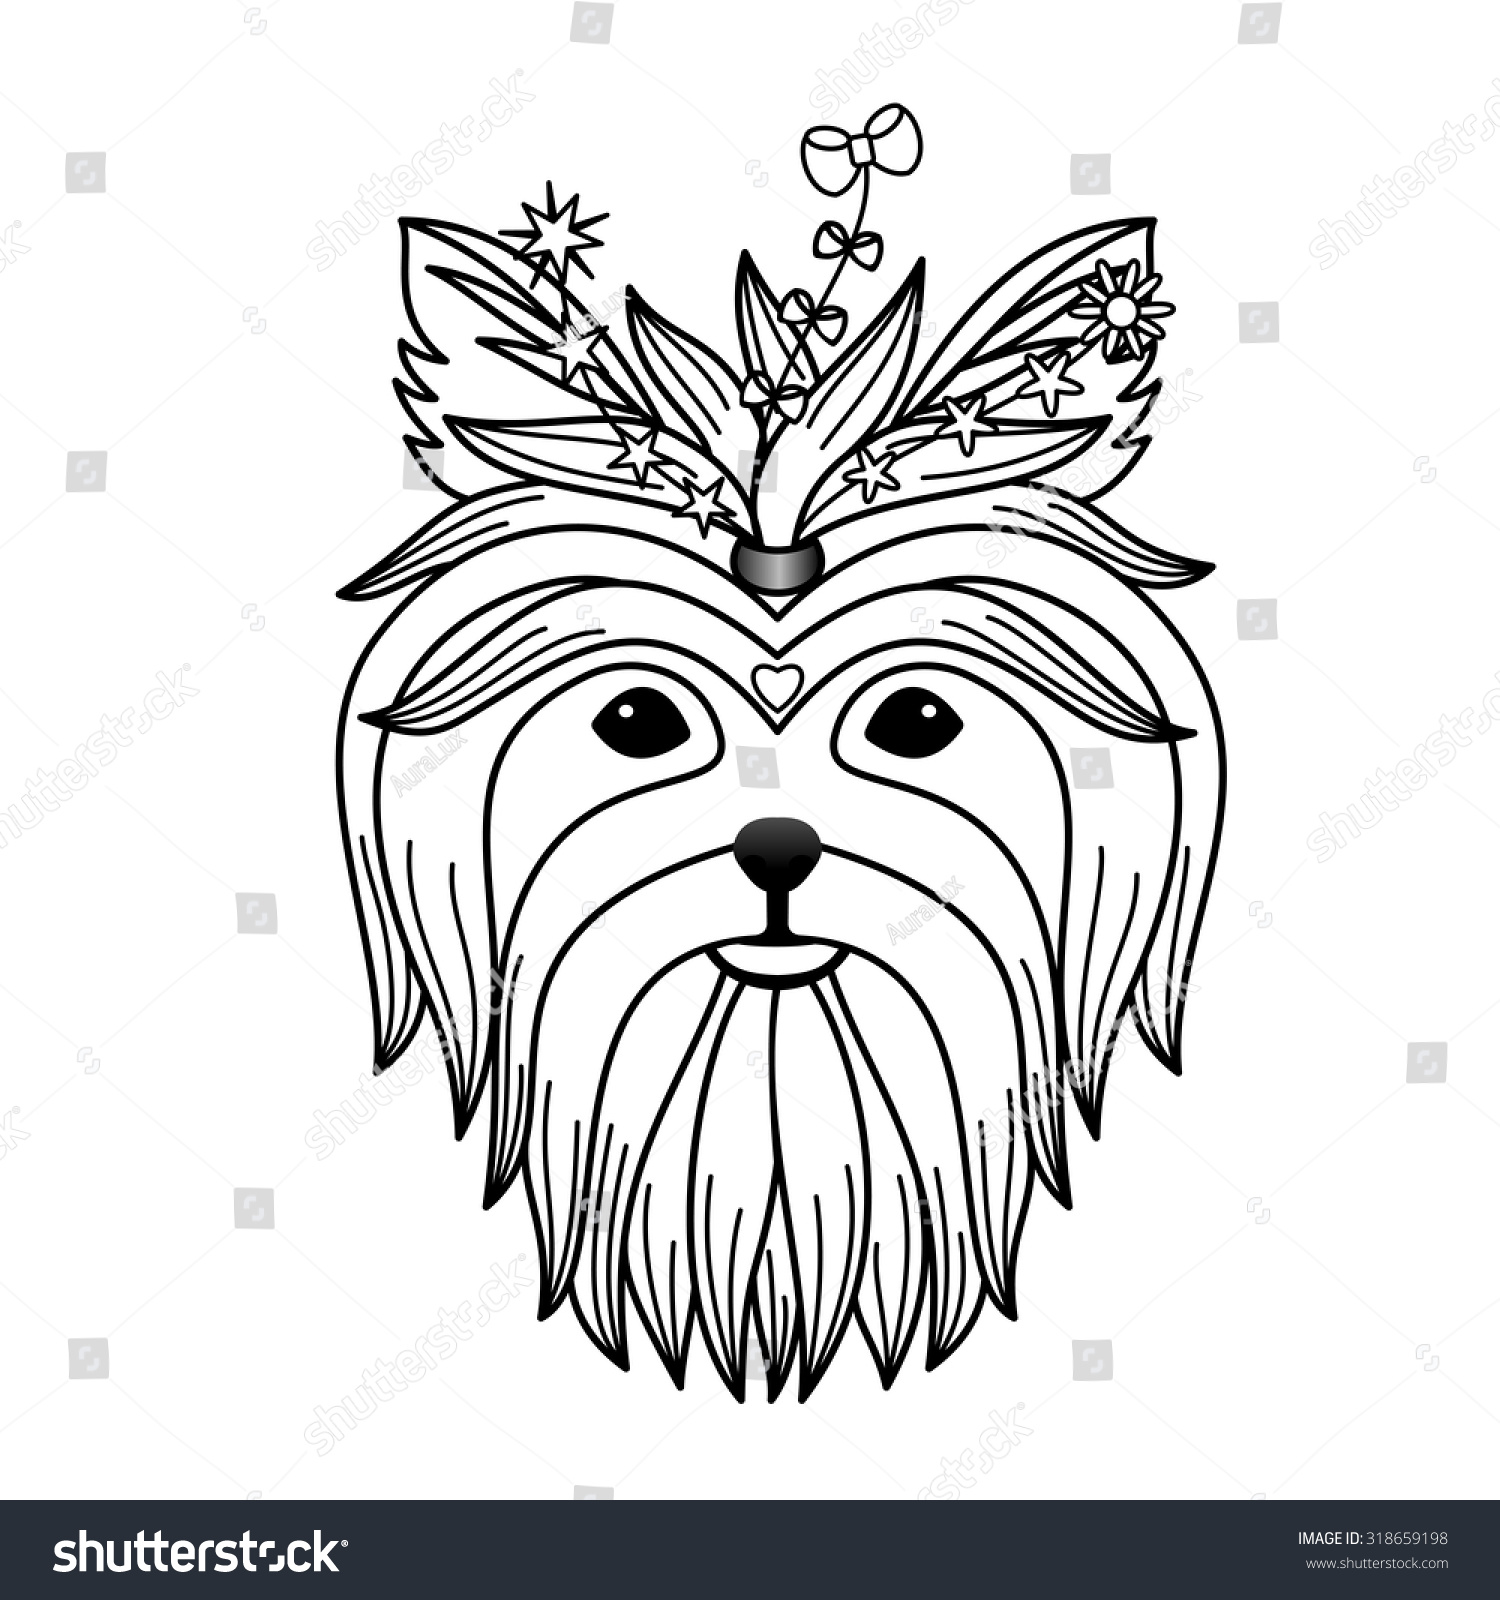 Coloring pages yorkie - Yorkshire Terrier Tattoo Vector Illustration For Textile Prints Tattoo Signs Web And